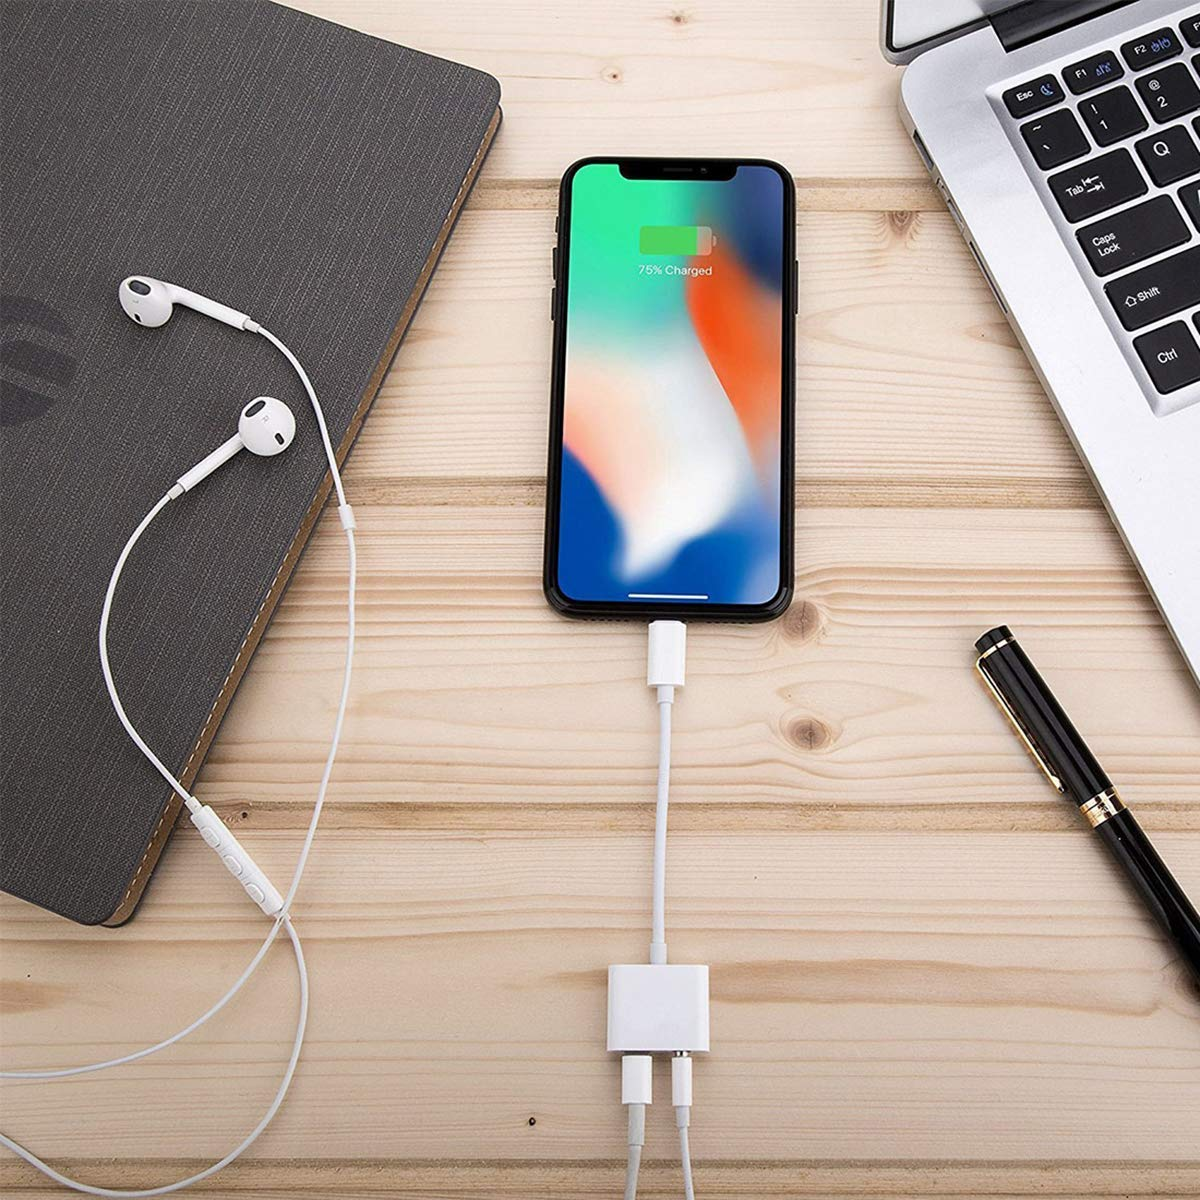 Headphone Adapter Charger for iPhone 3.5mm Jack Adaptor Car Charger with iPhone 8//8Plus for iPhone7//7Plus//X//10//Xs//XSmax Cable AUX Audio Jack Control Headphone Extender Connector Support11 and Higher